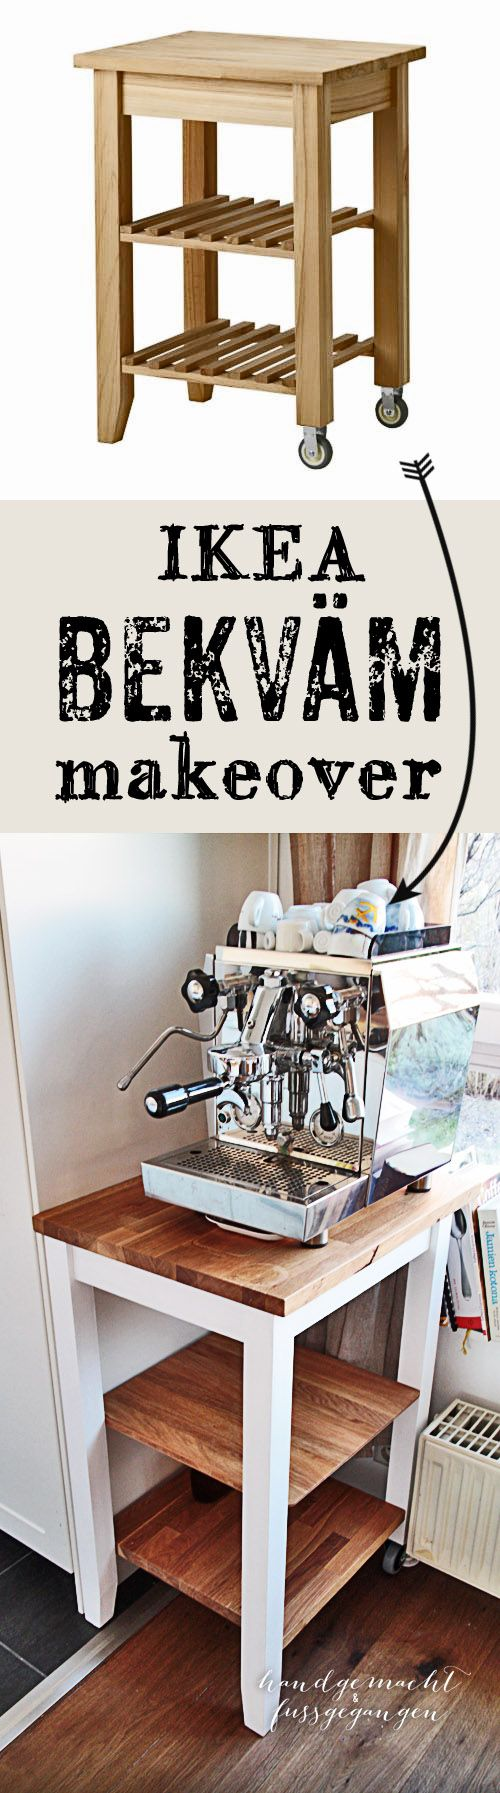 DIY Ikea Bekvam (Bekväm) kitchen cart Makeover & Hack Wie man die ...